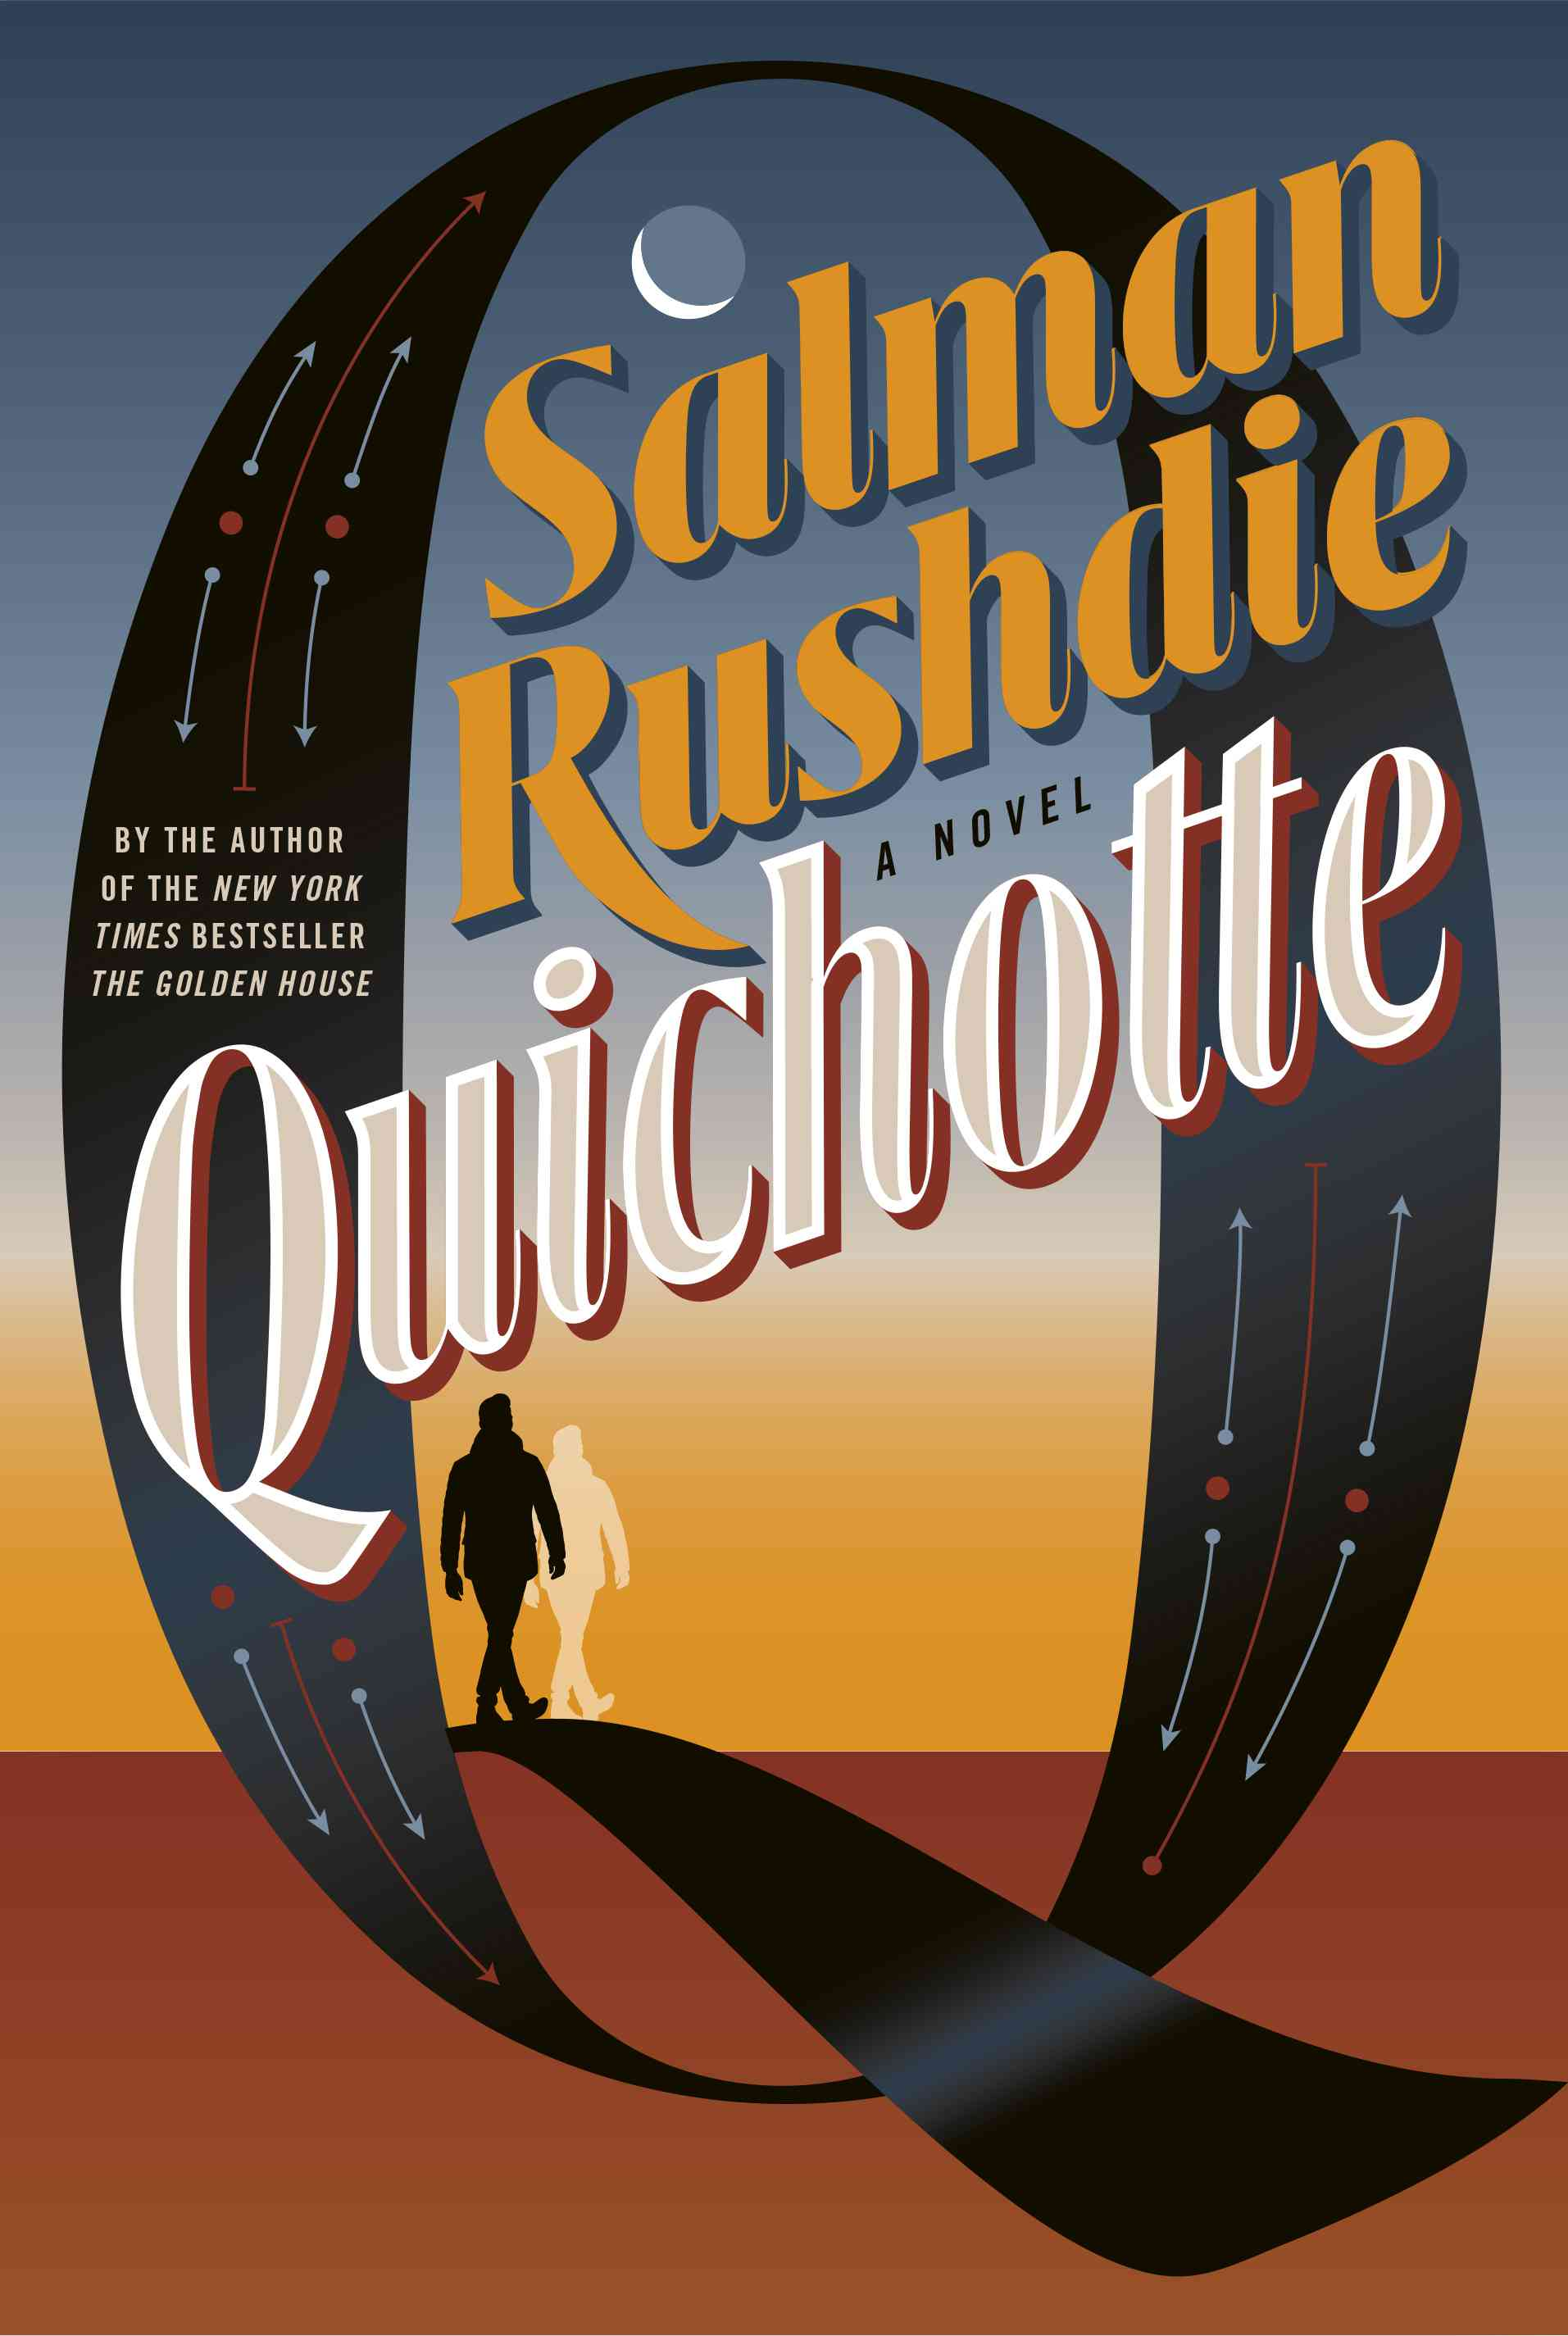 'Quichotte' by Salman Rushdie